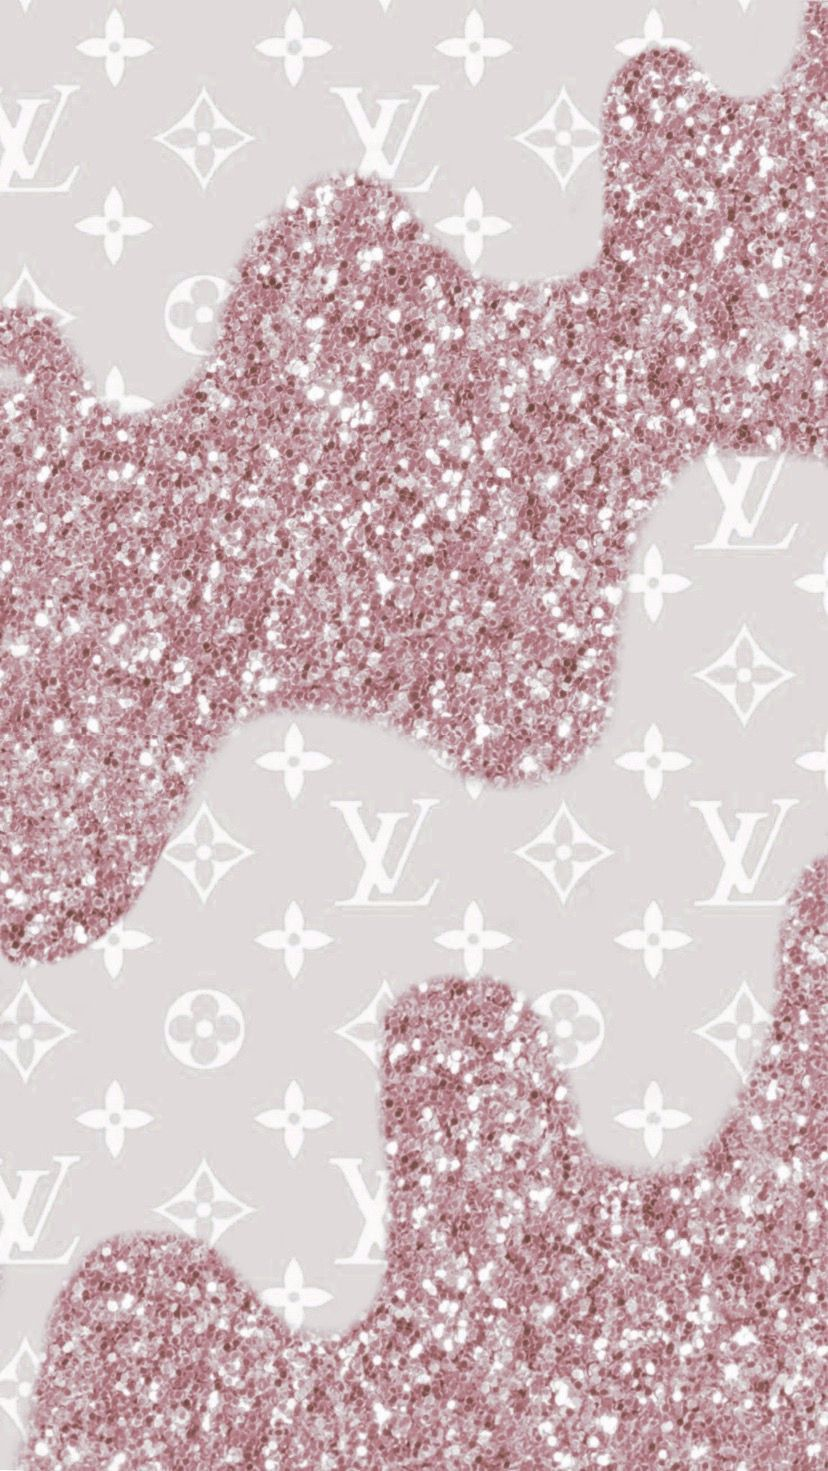 Rose Gold Louis Vuitton Sparkling Drips Wallpaper Background For All Phones Aesthetic Iphone Wallpaper Cute Tumblr Wallpaper Pretty Wallpapers